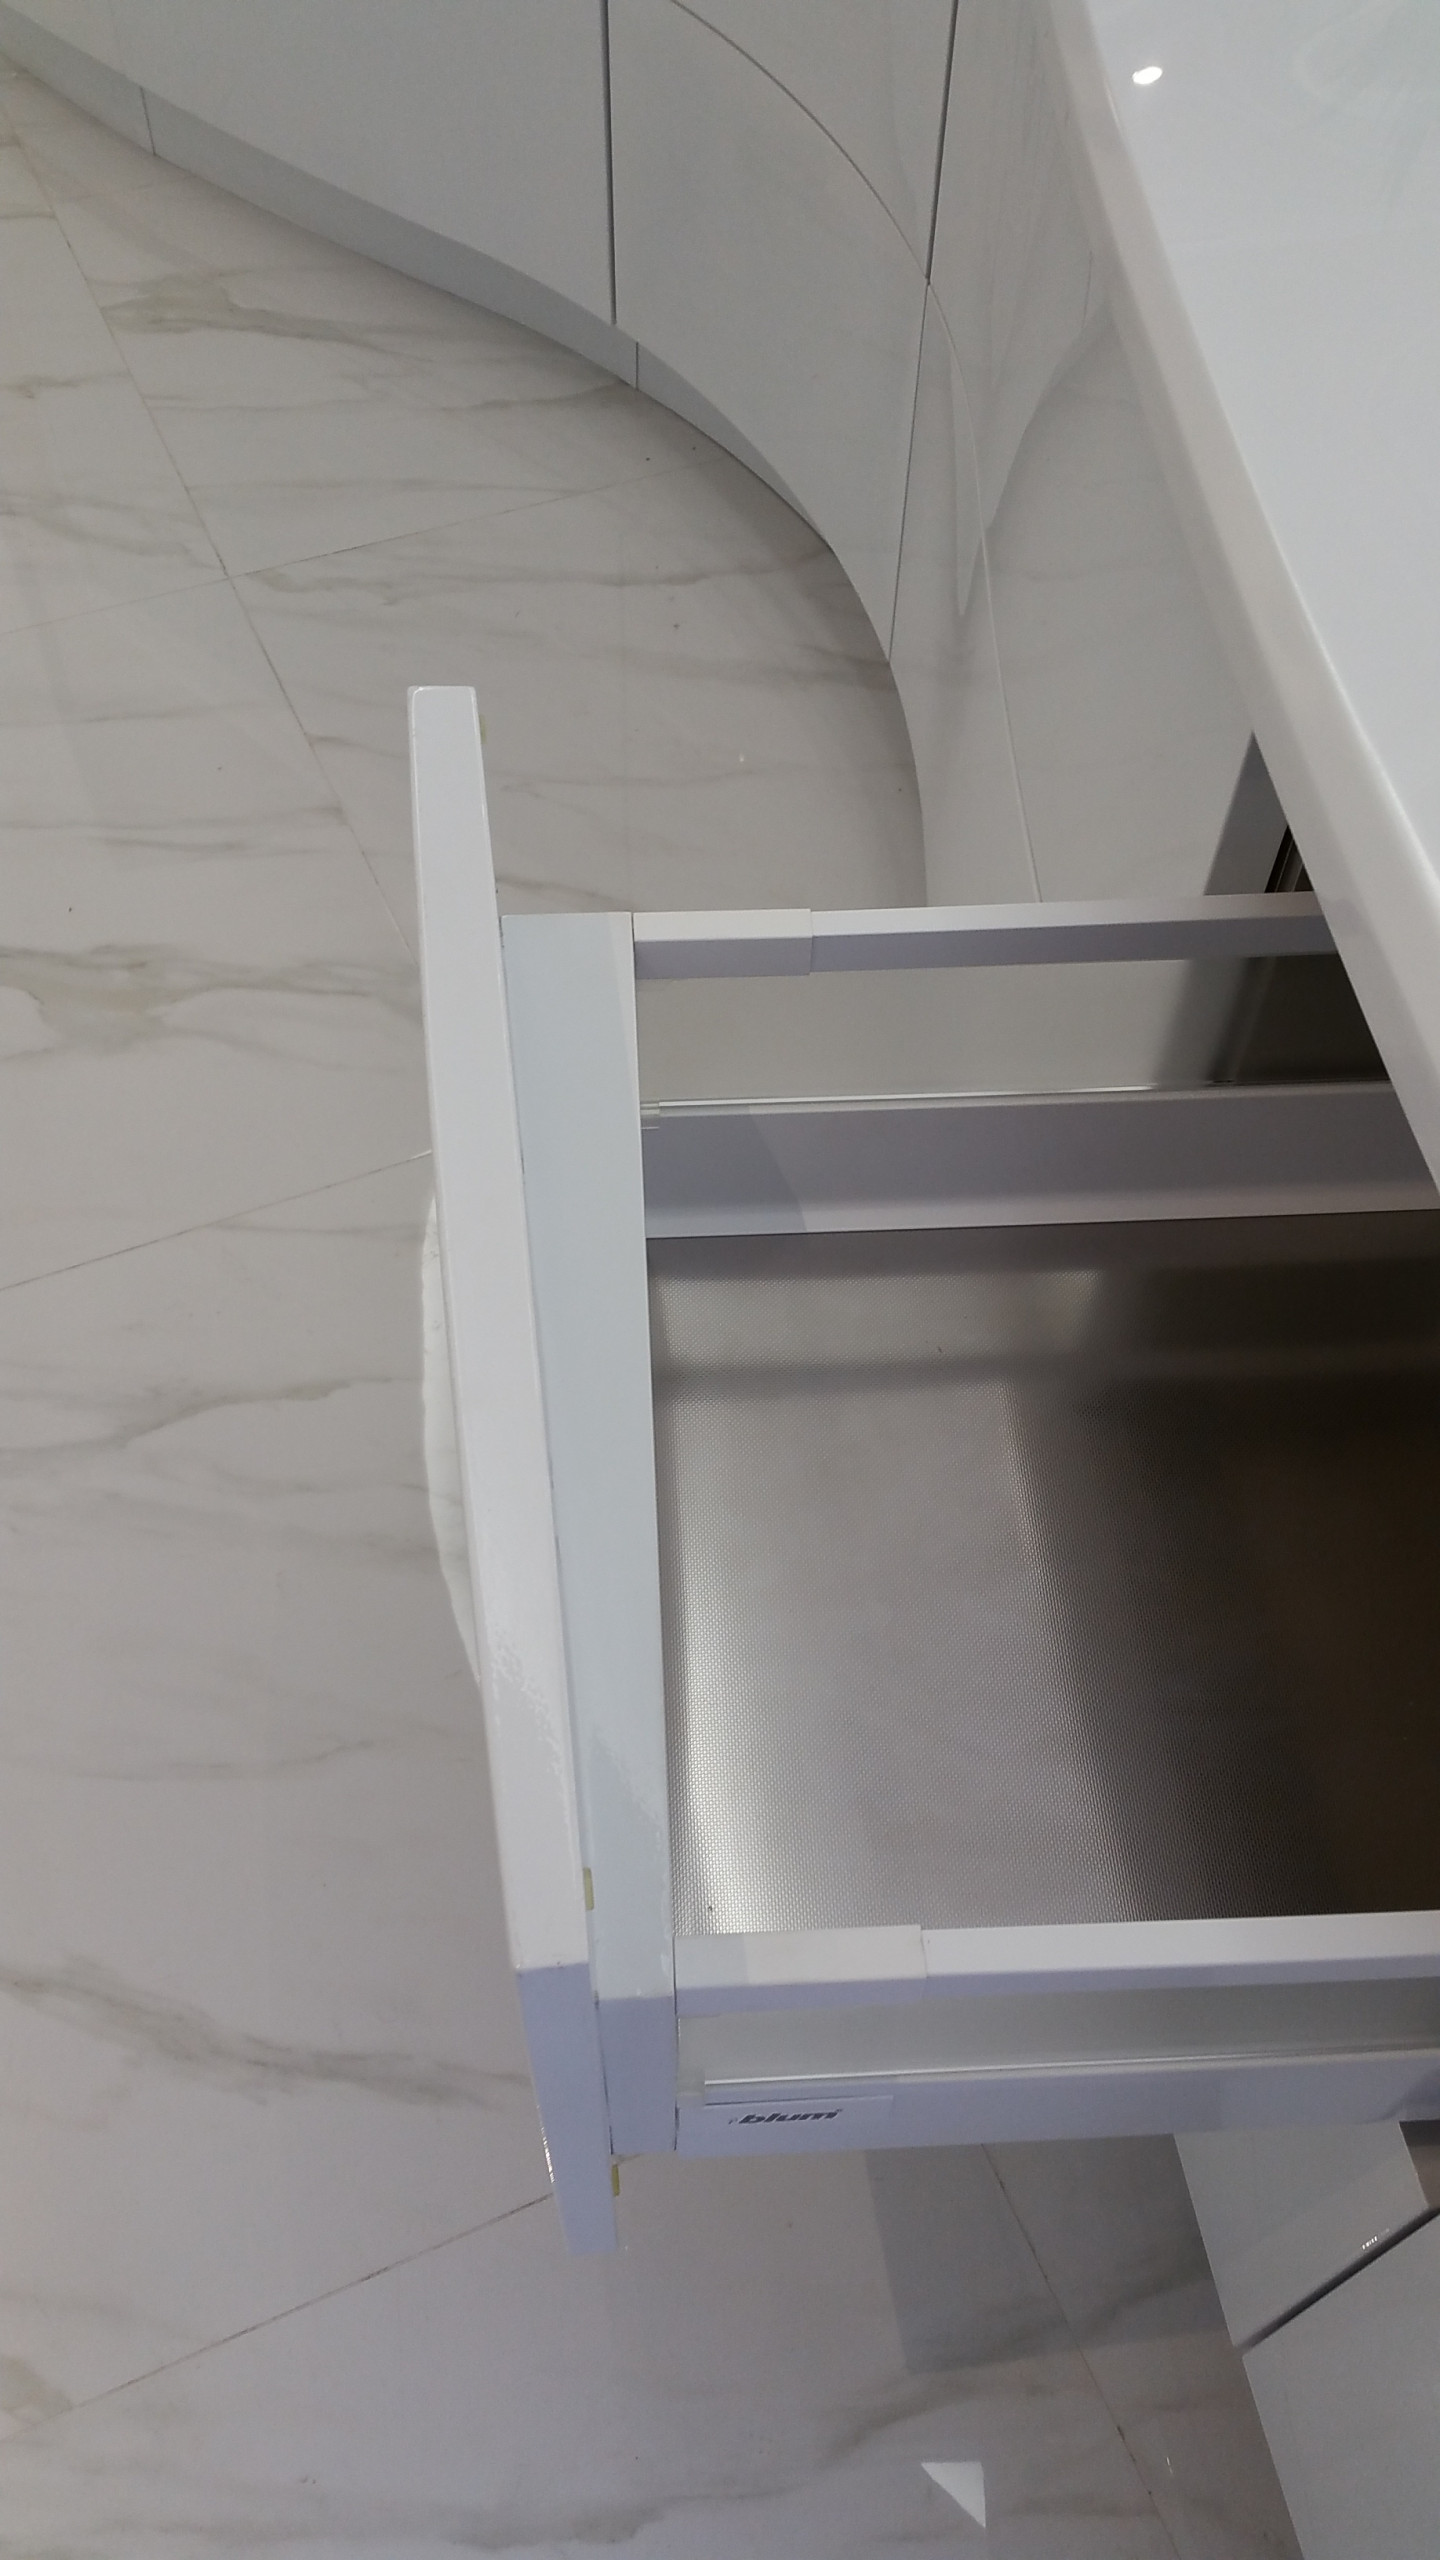 Stainless Steel cabinetry with electroplated finish